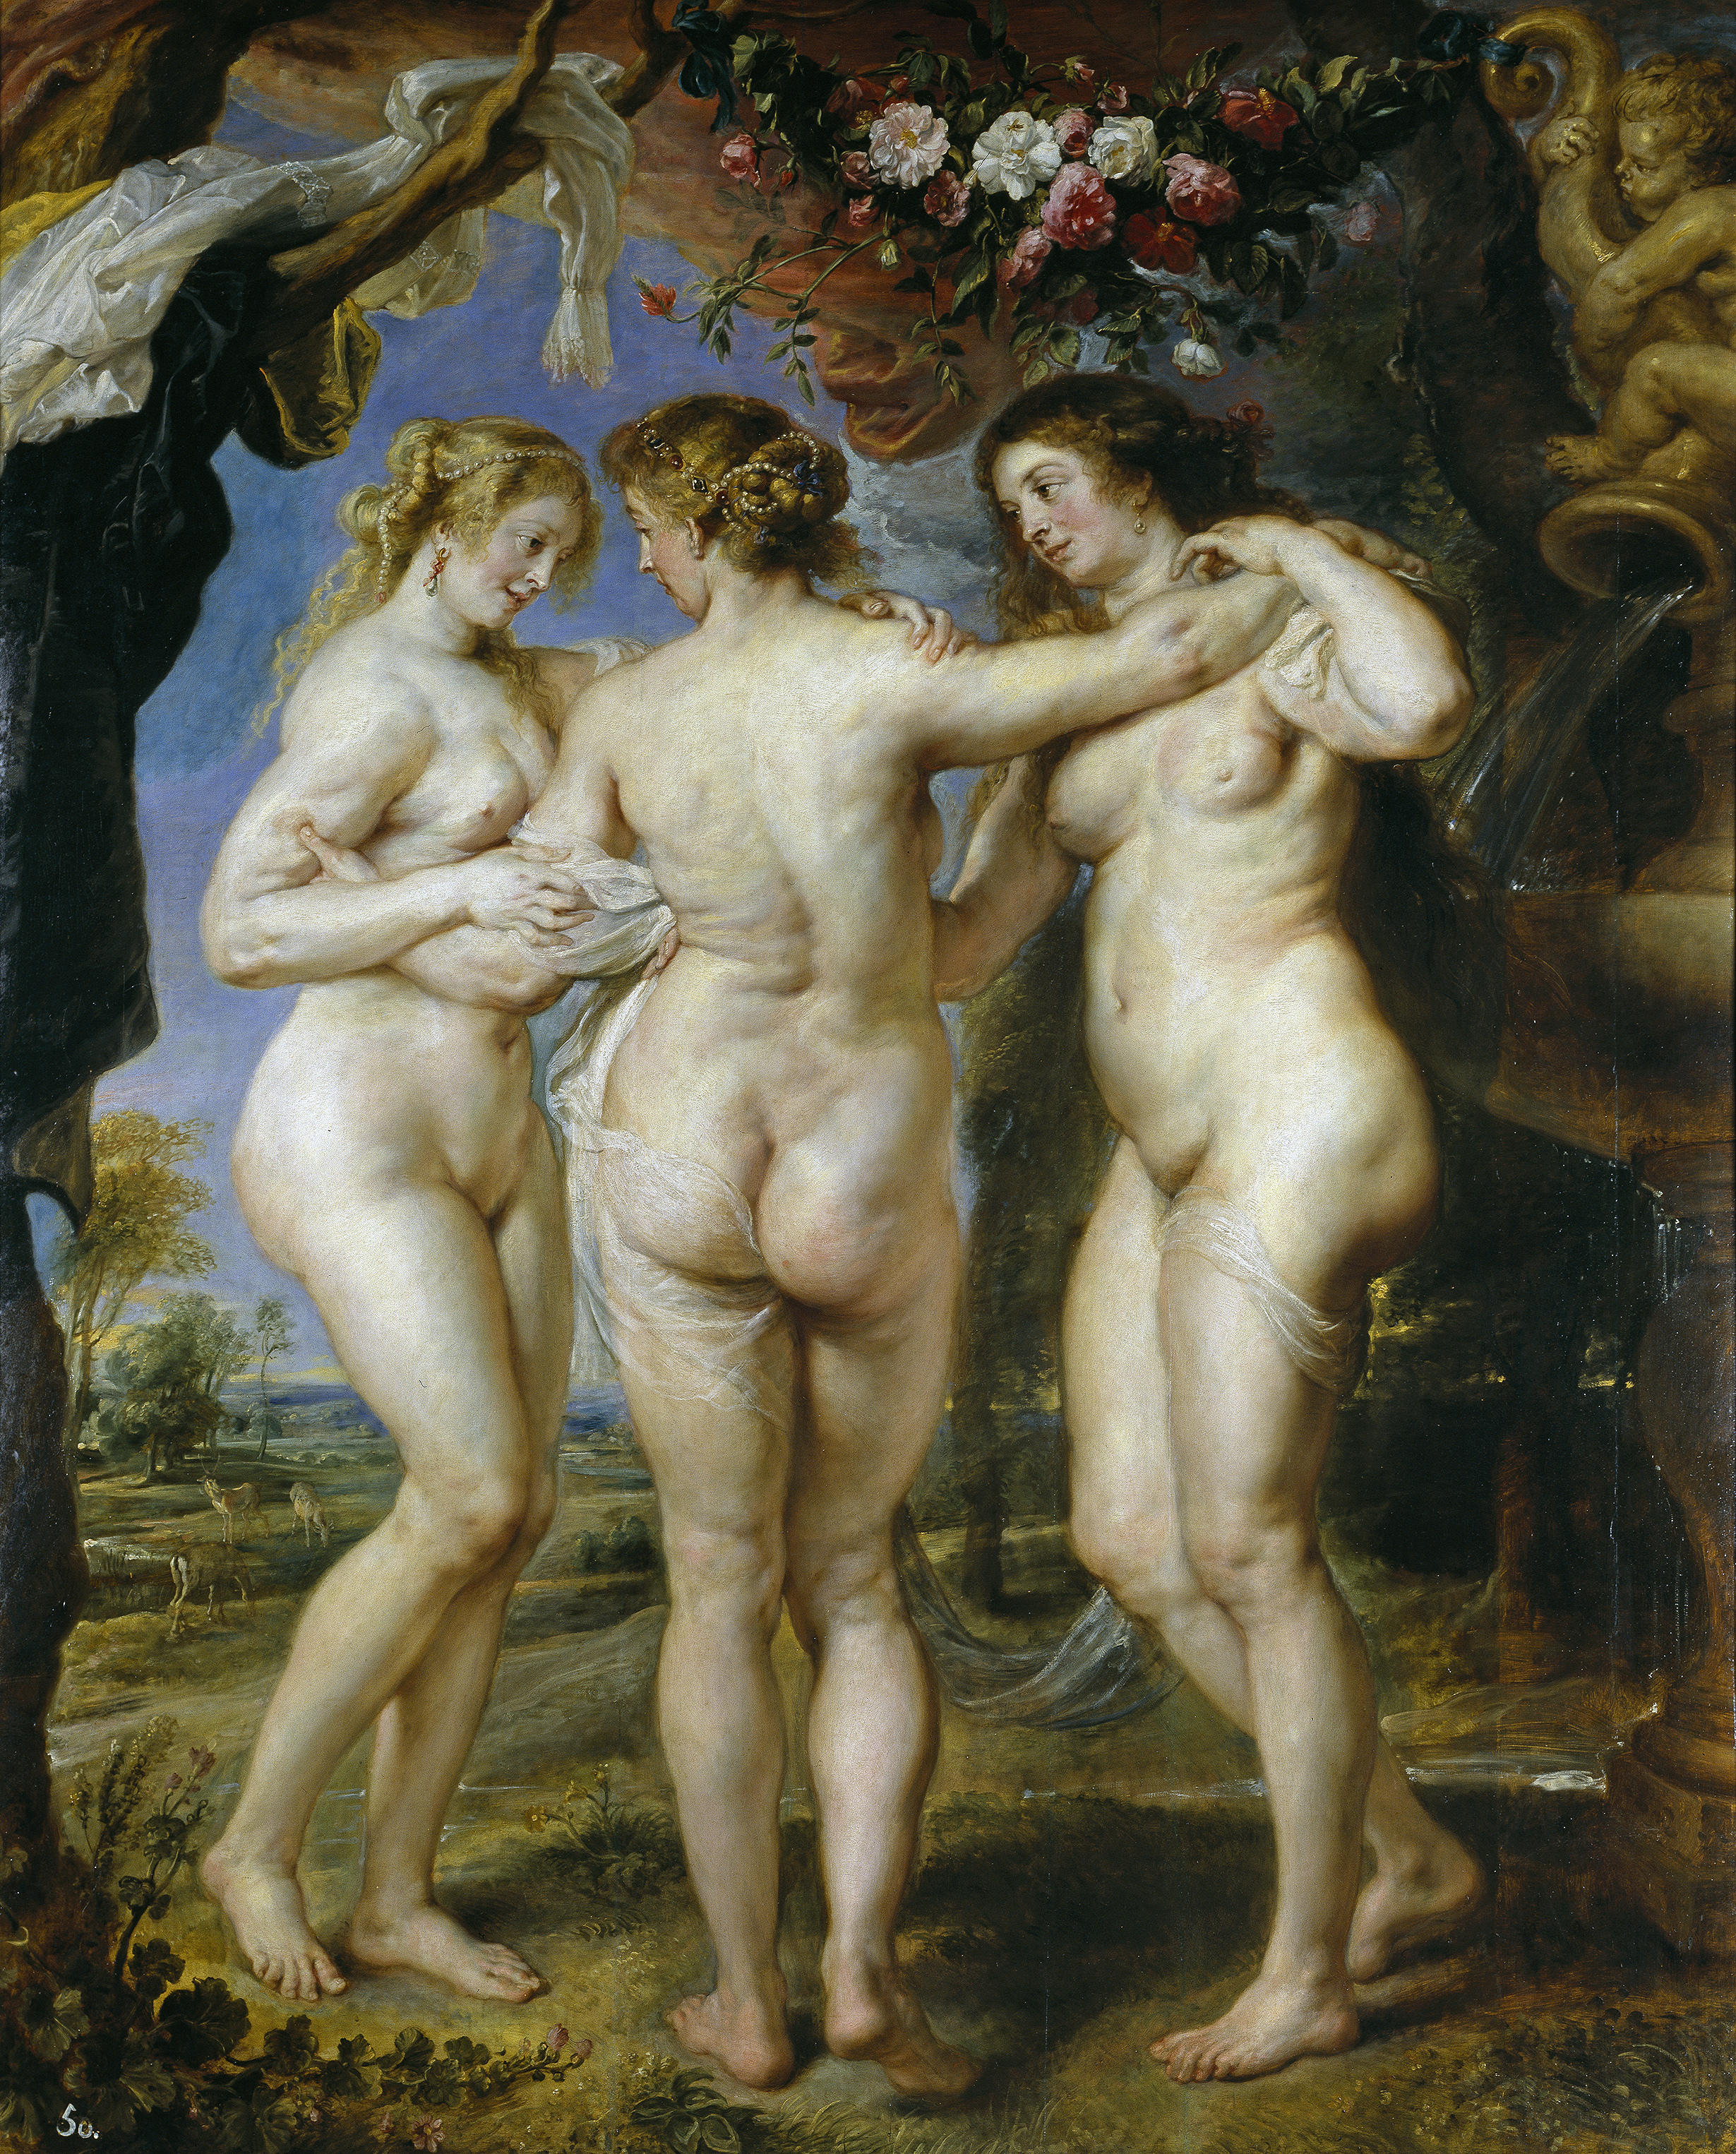 Peter Paul Rubens, 1577-1640. Три грации. ок.1635. 221 х 181 см. Мадрид, музей Прадо